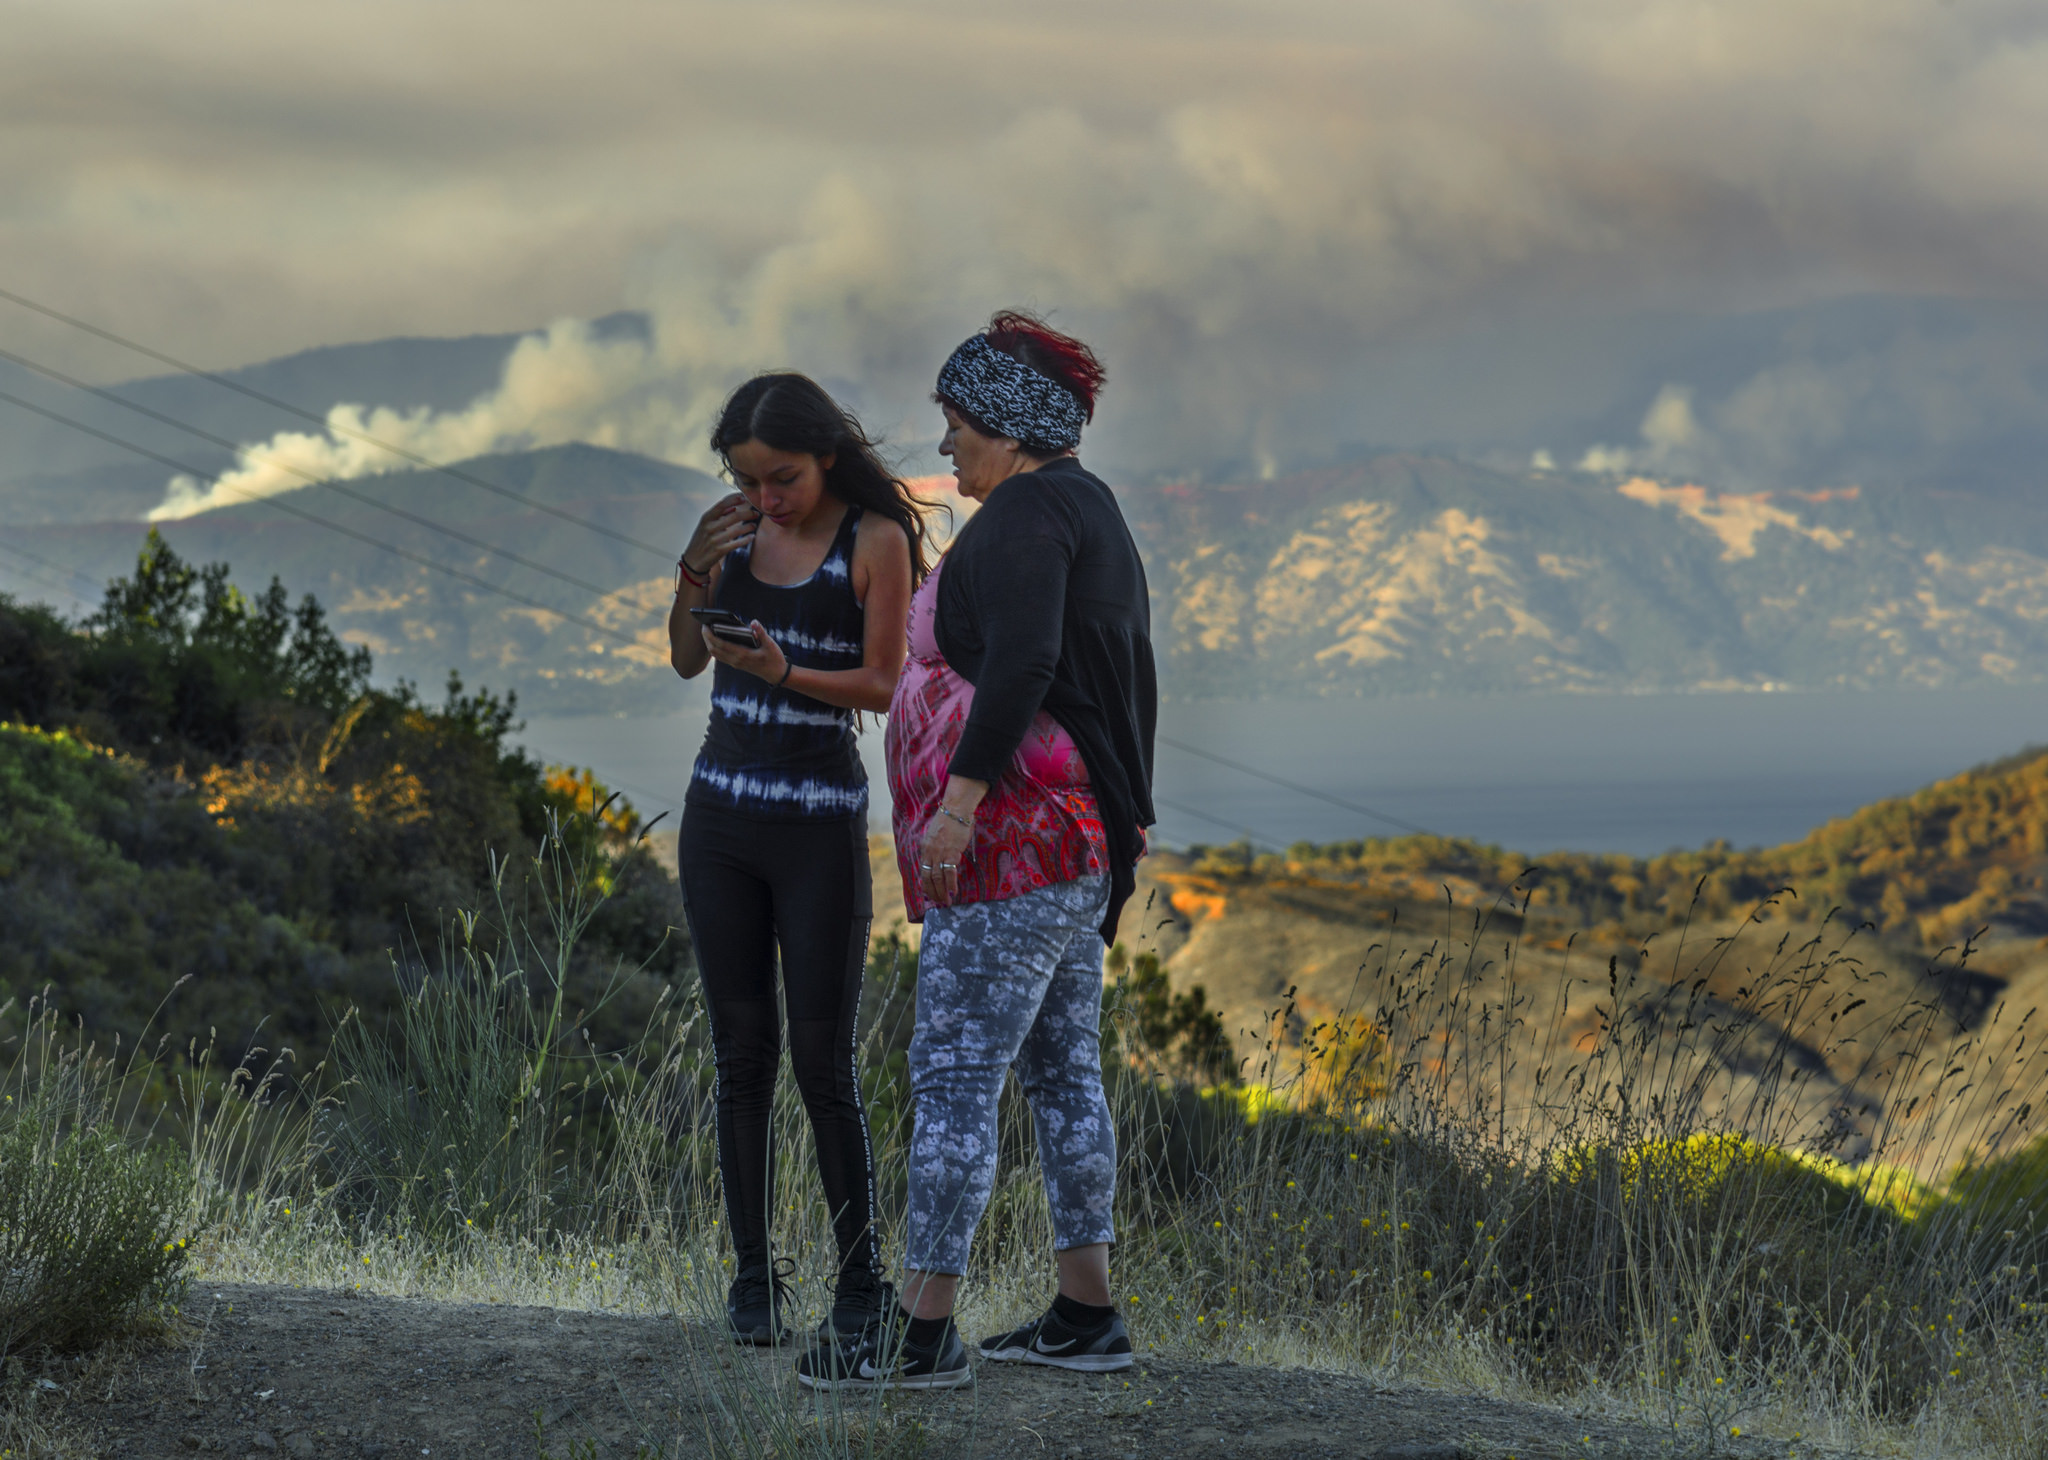 Two people look at a cellphone on the side of a road as a large wildfire burns in the background.